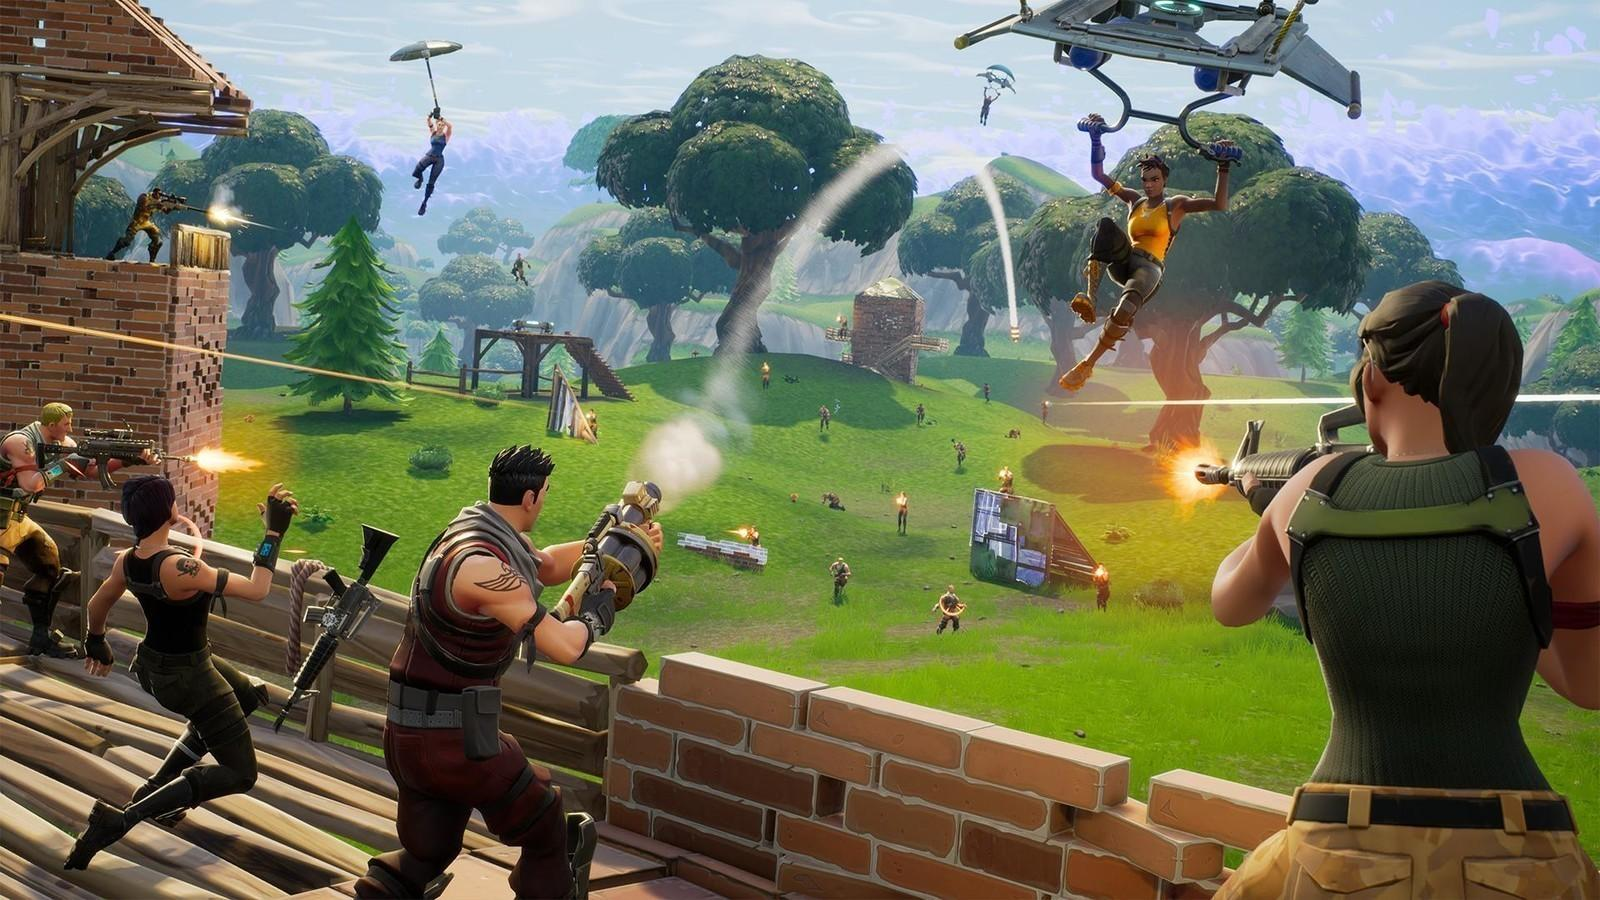 Fortnite has taken the world by storm… no pun intended